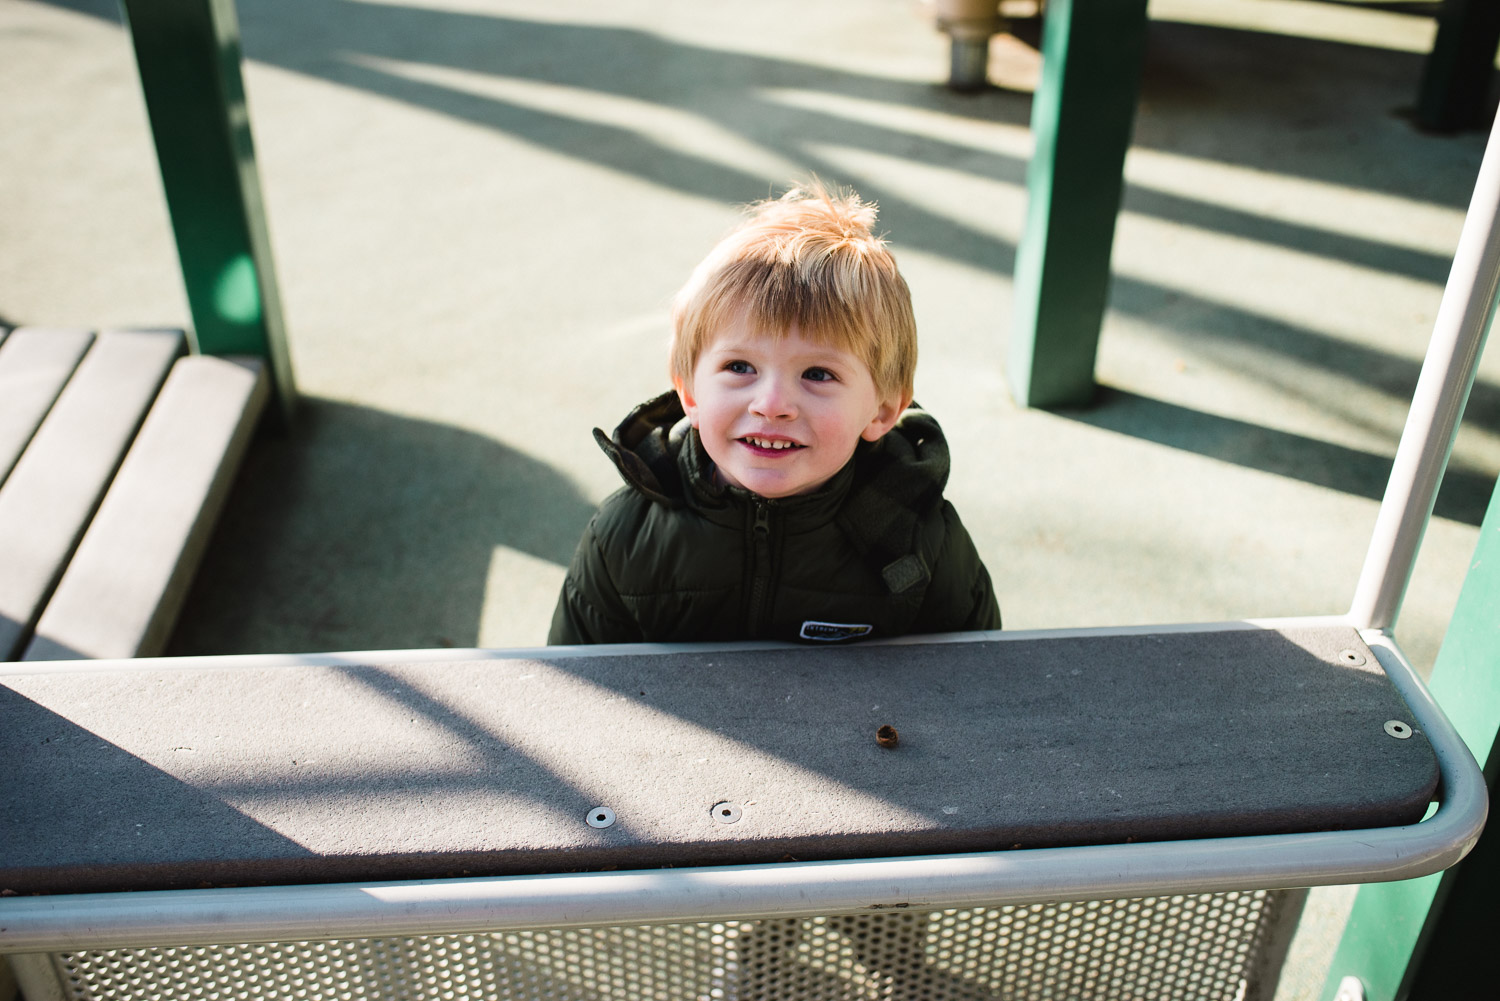 A little boy smiling on the playground.